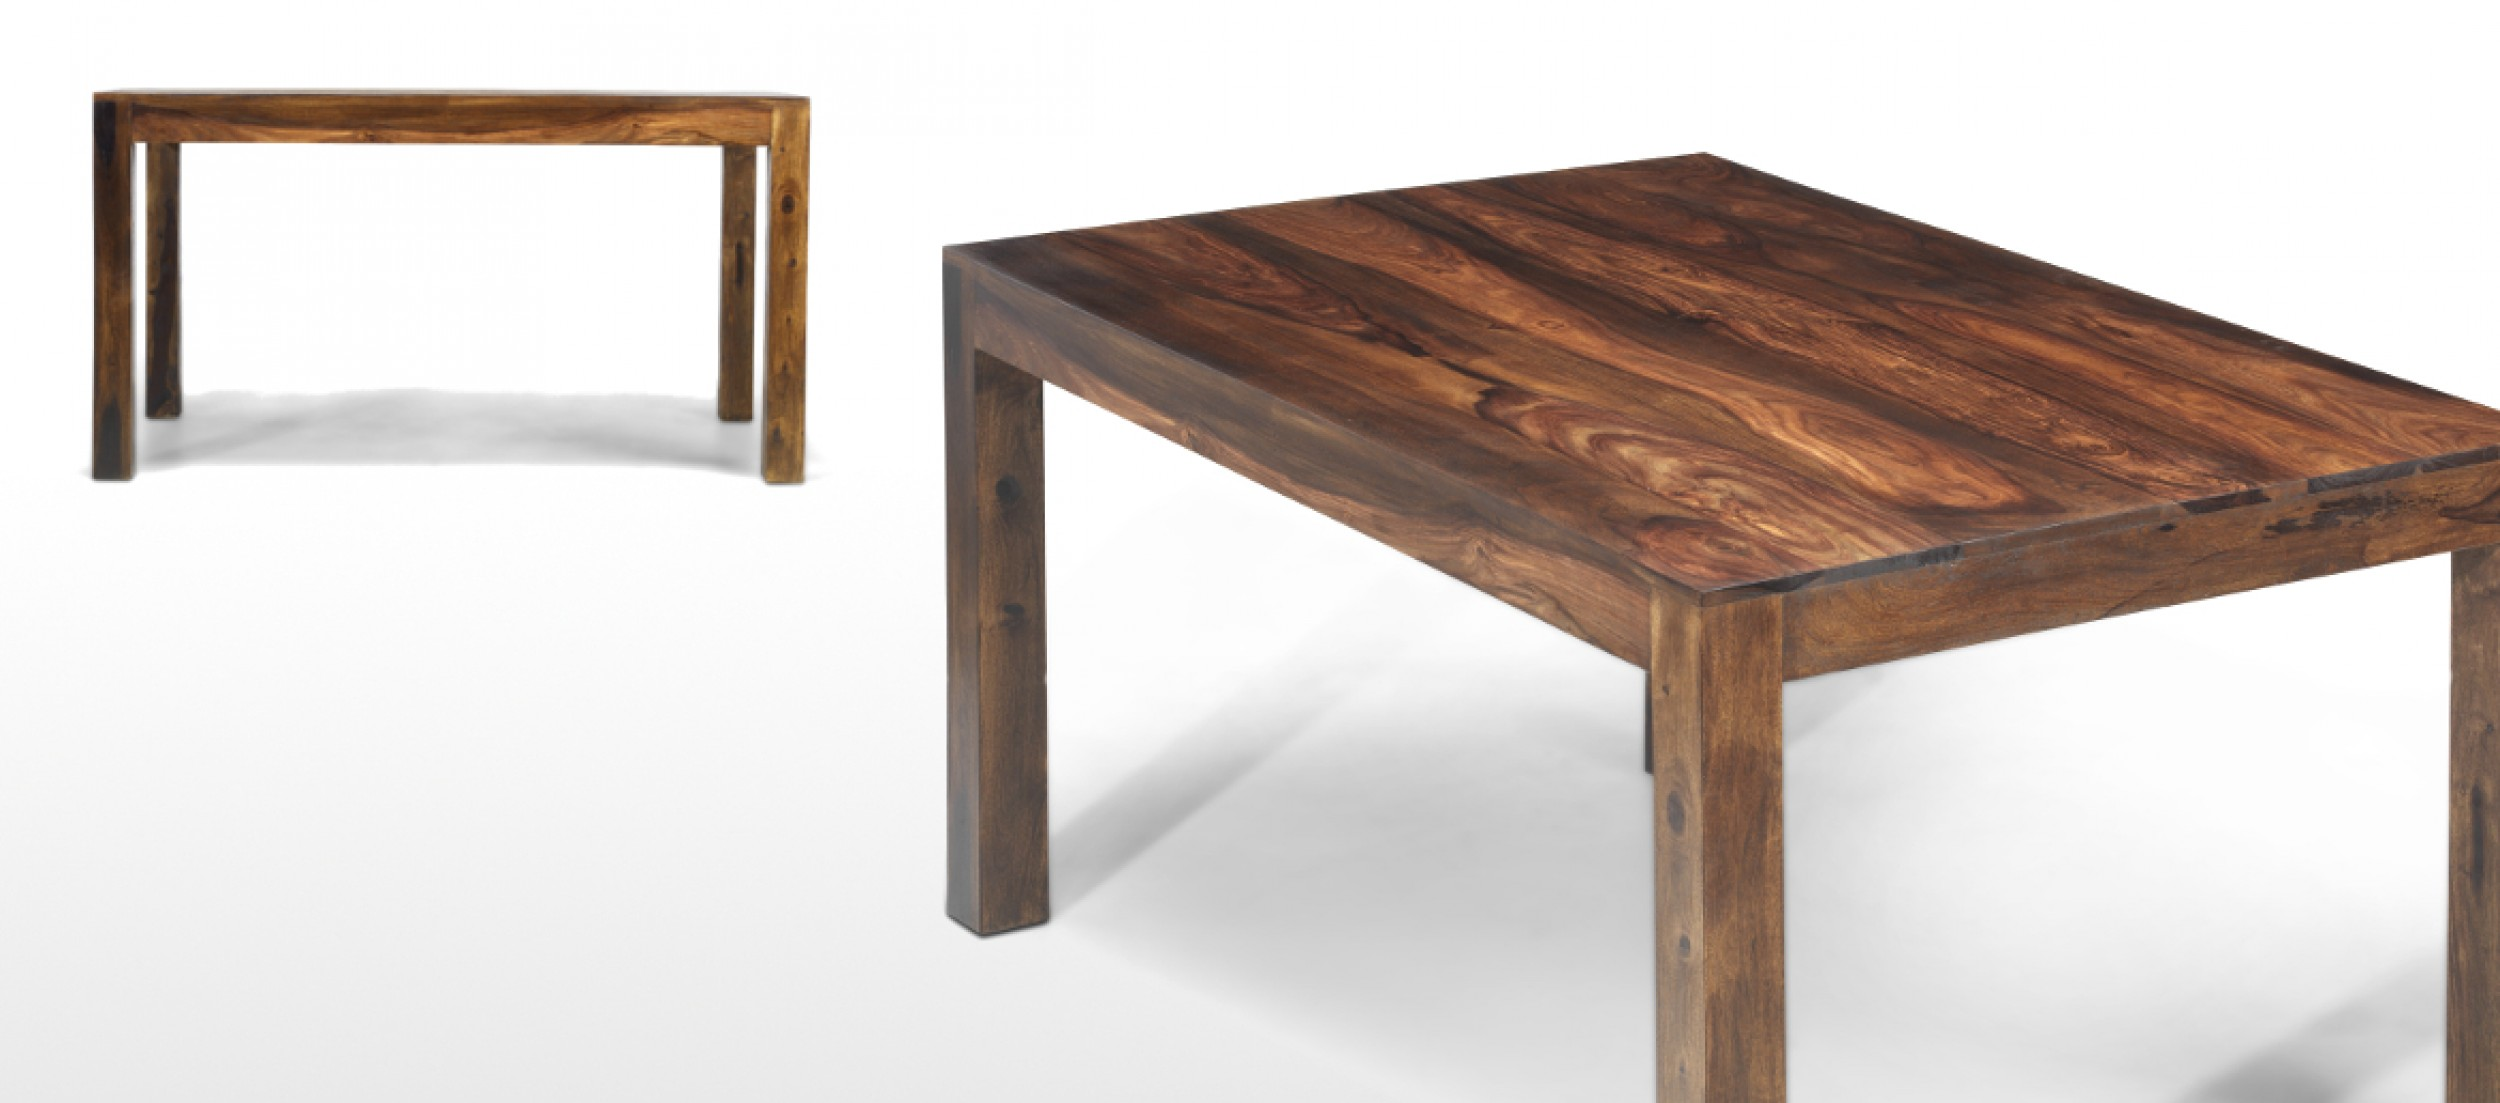 Cube sheesham 140 cm dining table quercus living for Sheesham dining table